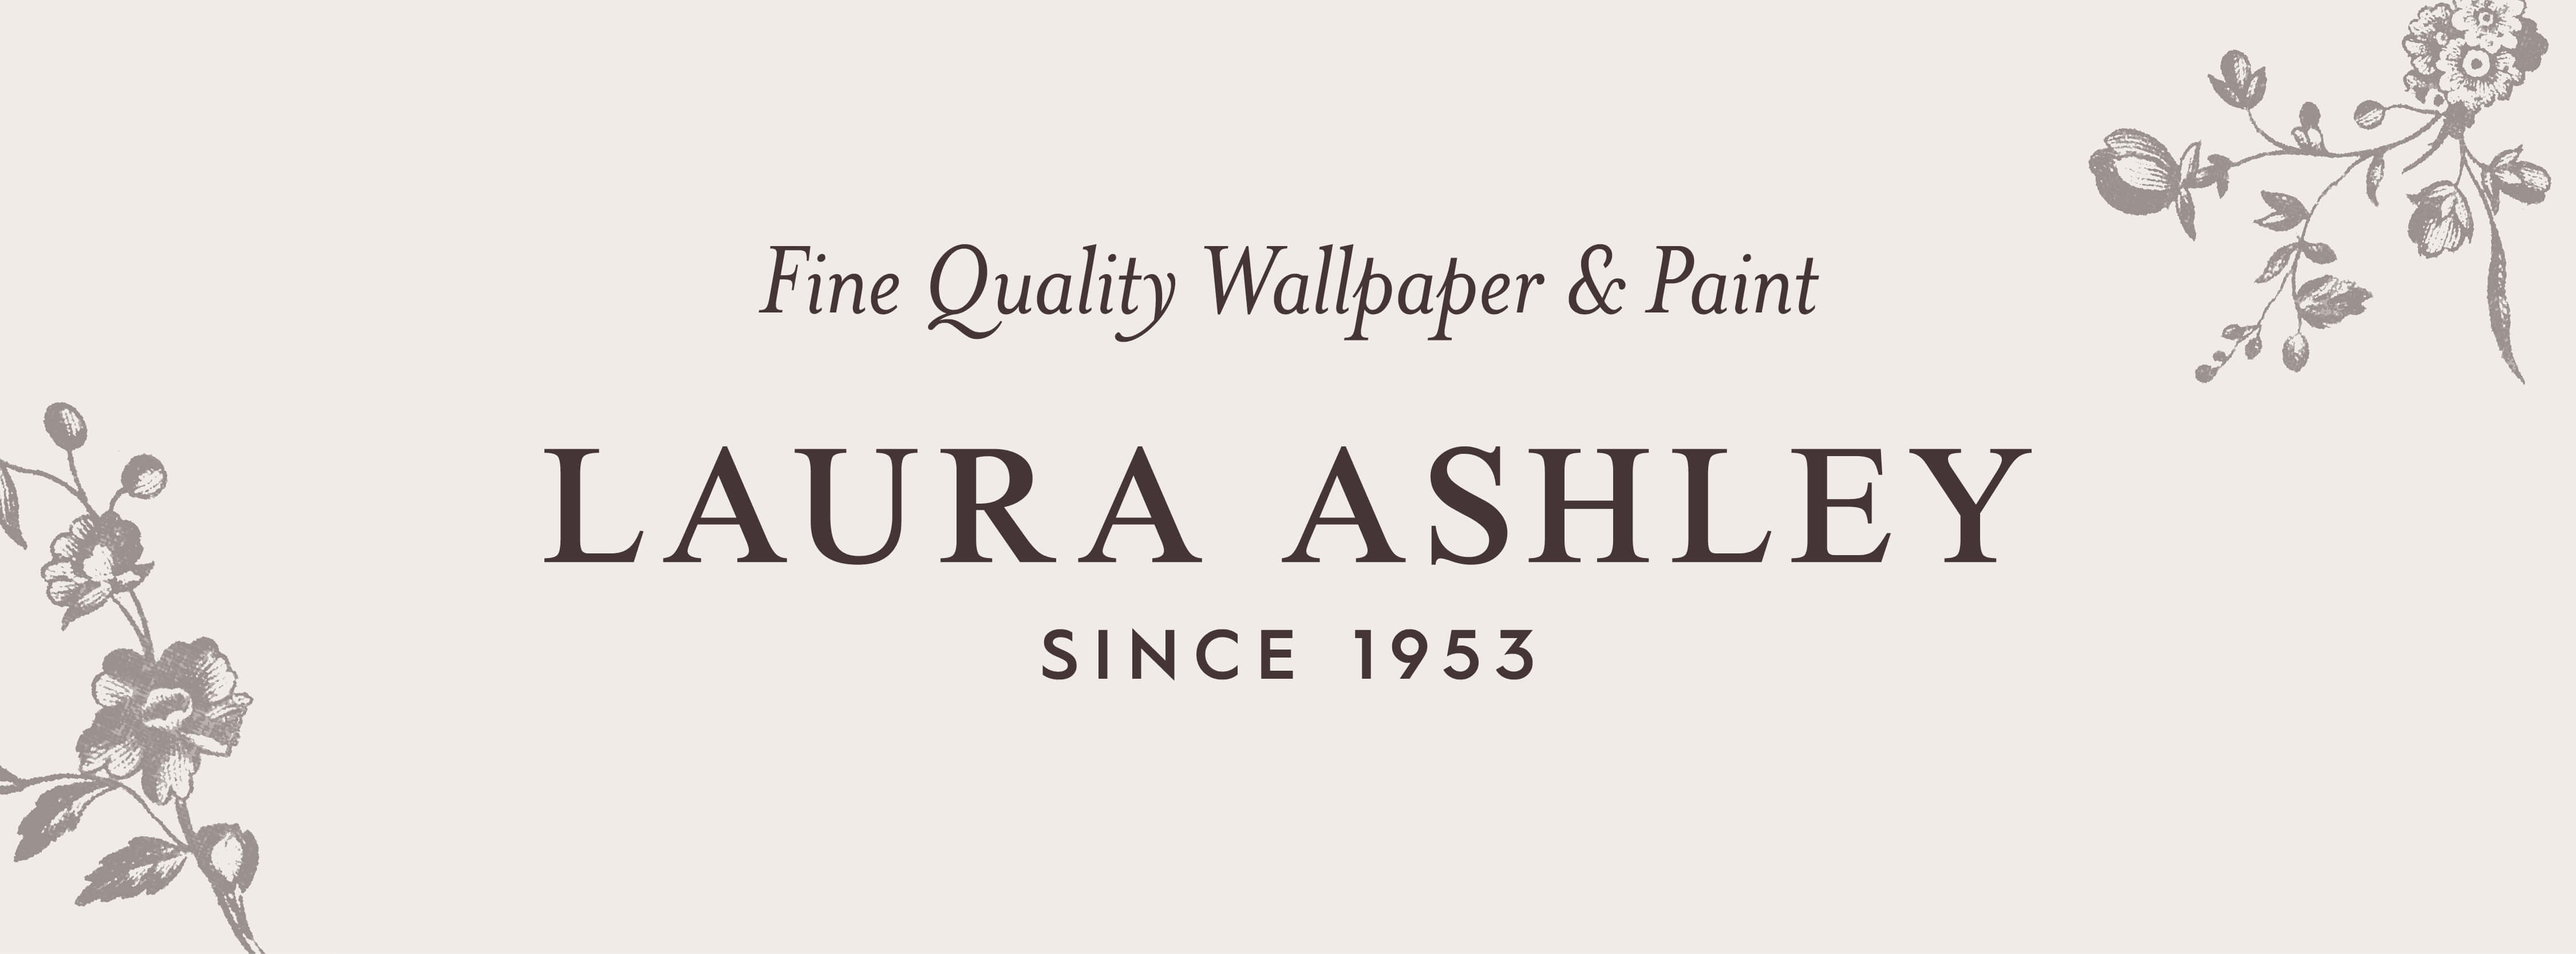 Fine quality Wallpaper & paint - Laura Ashley Since 1953 - Ship the full range instore or online